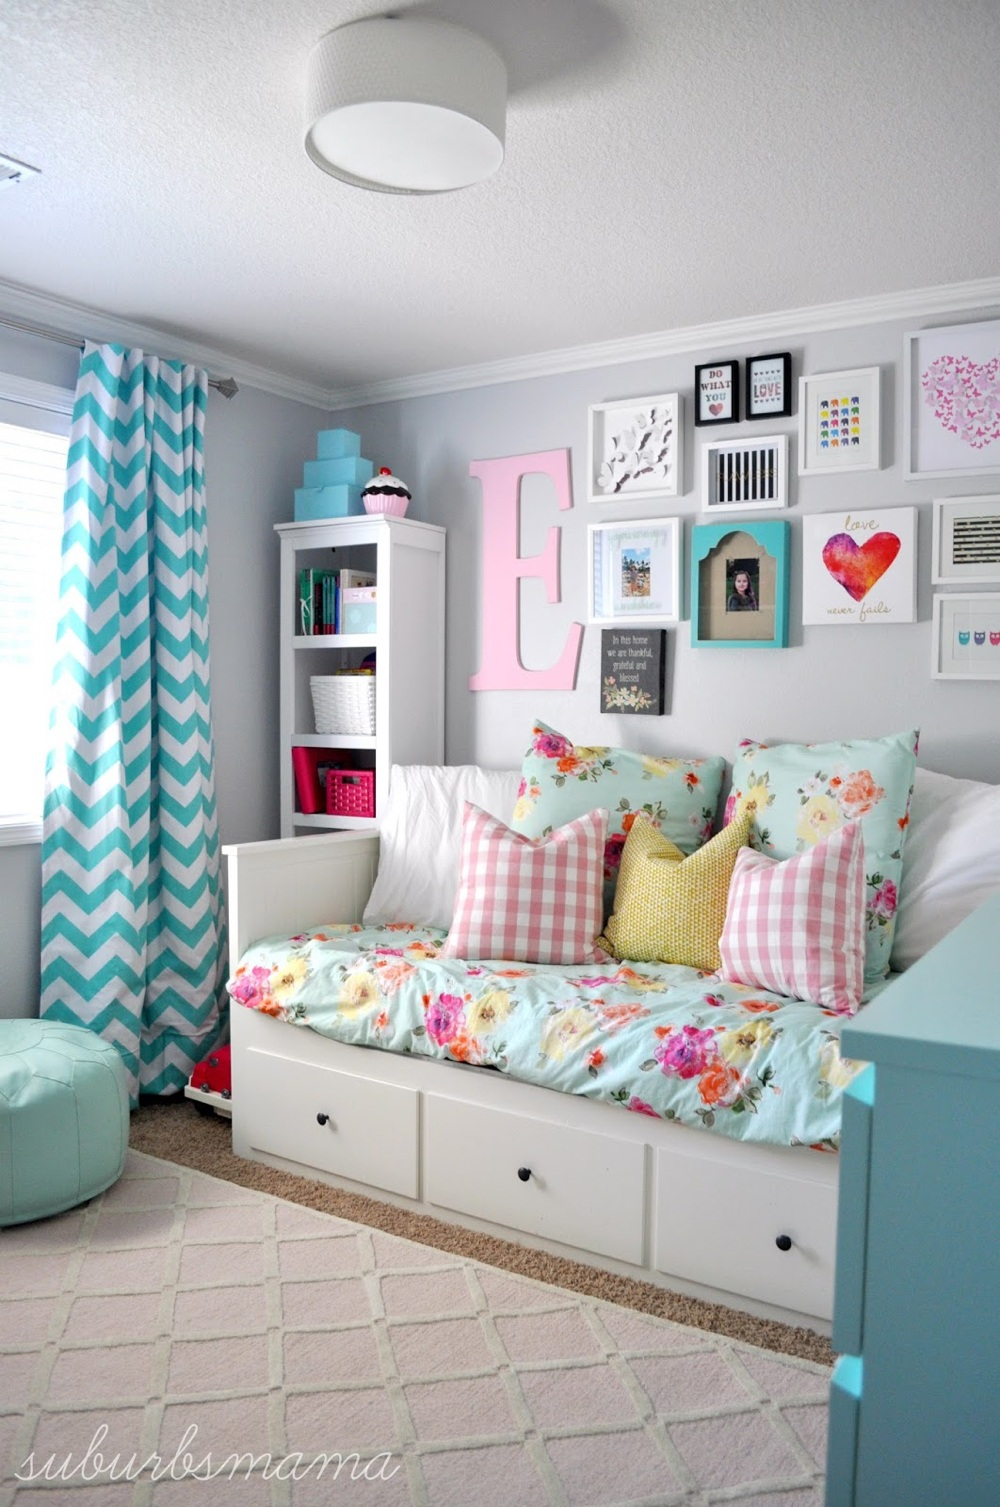 Reading Room Design Ideas: 23 Stylish Teen Girl's Bedroom Ideas